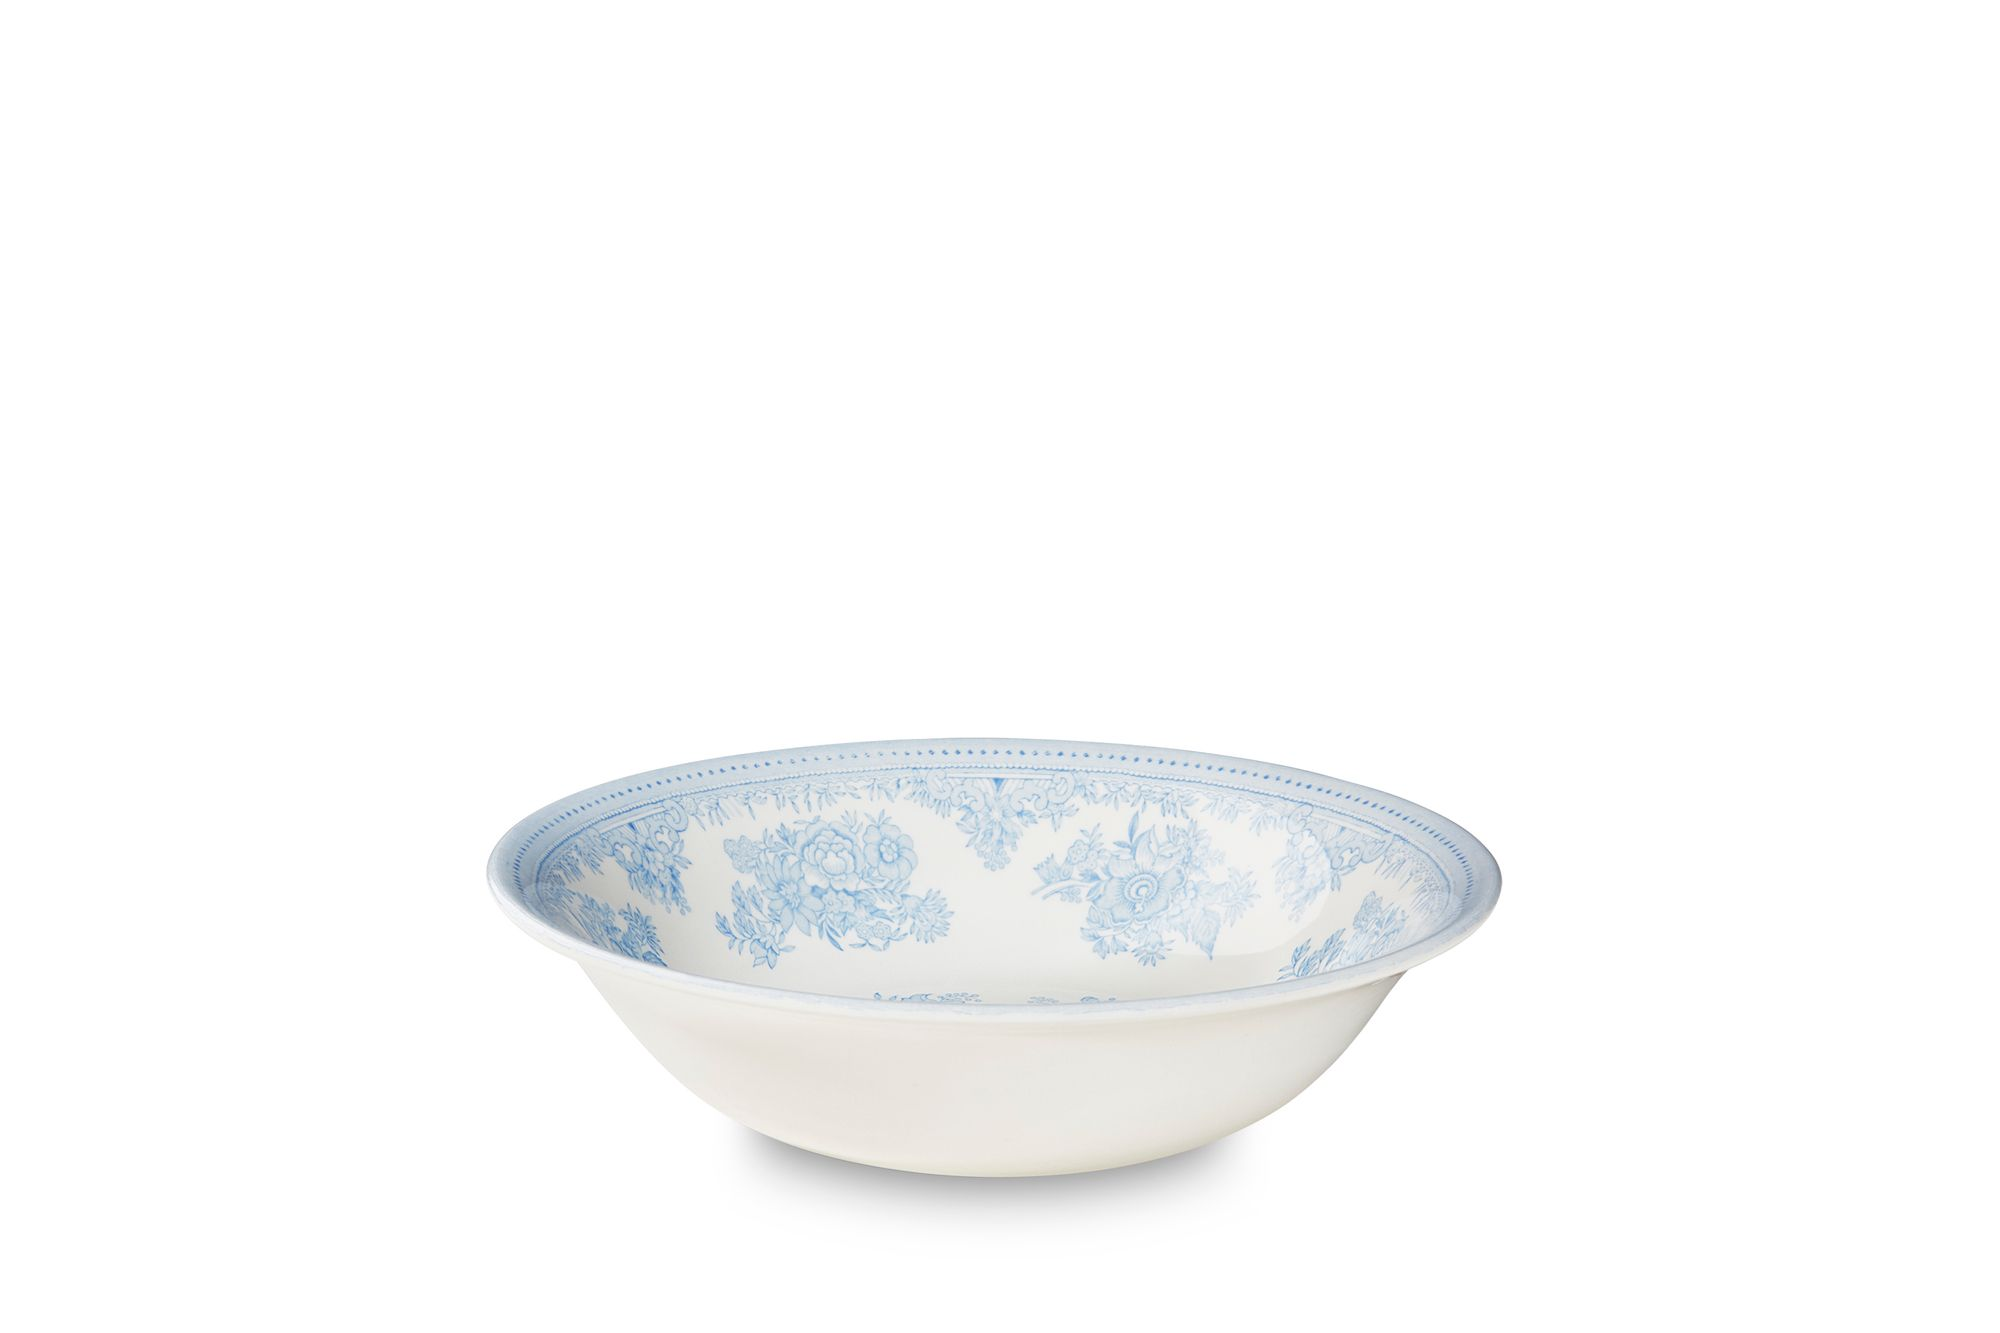 """Burleigh Blue Asiatic Pheasants Soup / Cereal Bowl 8"""" thumb 1"""